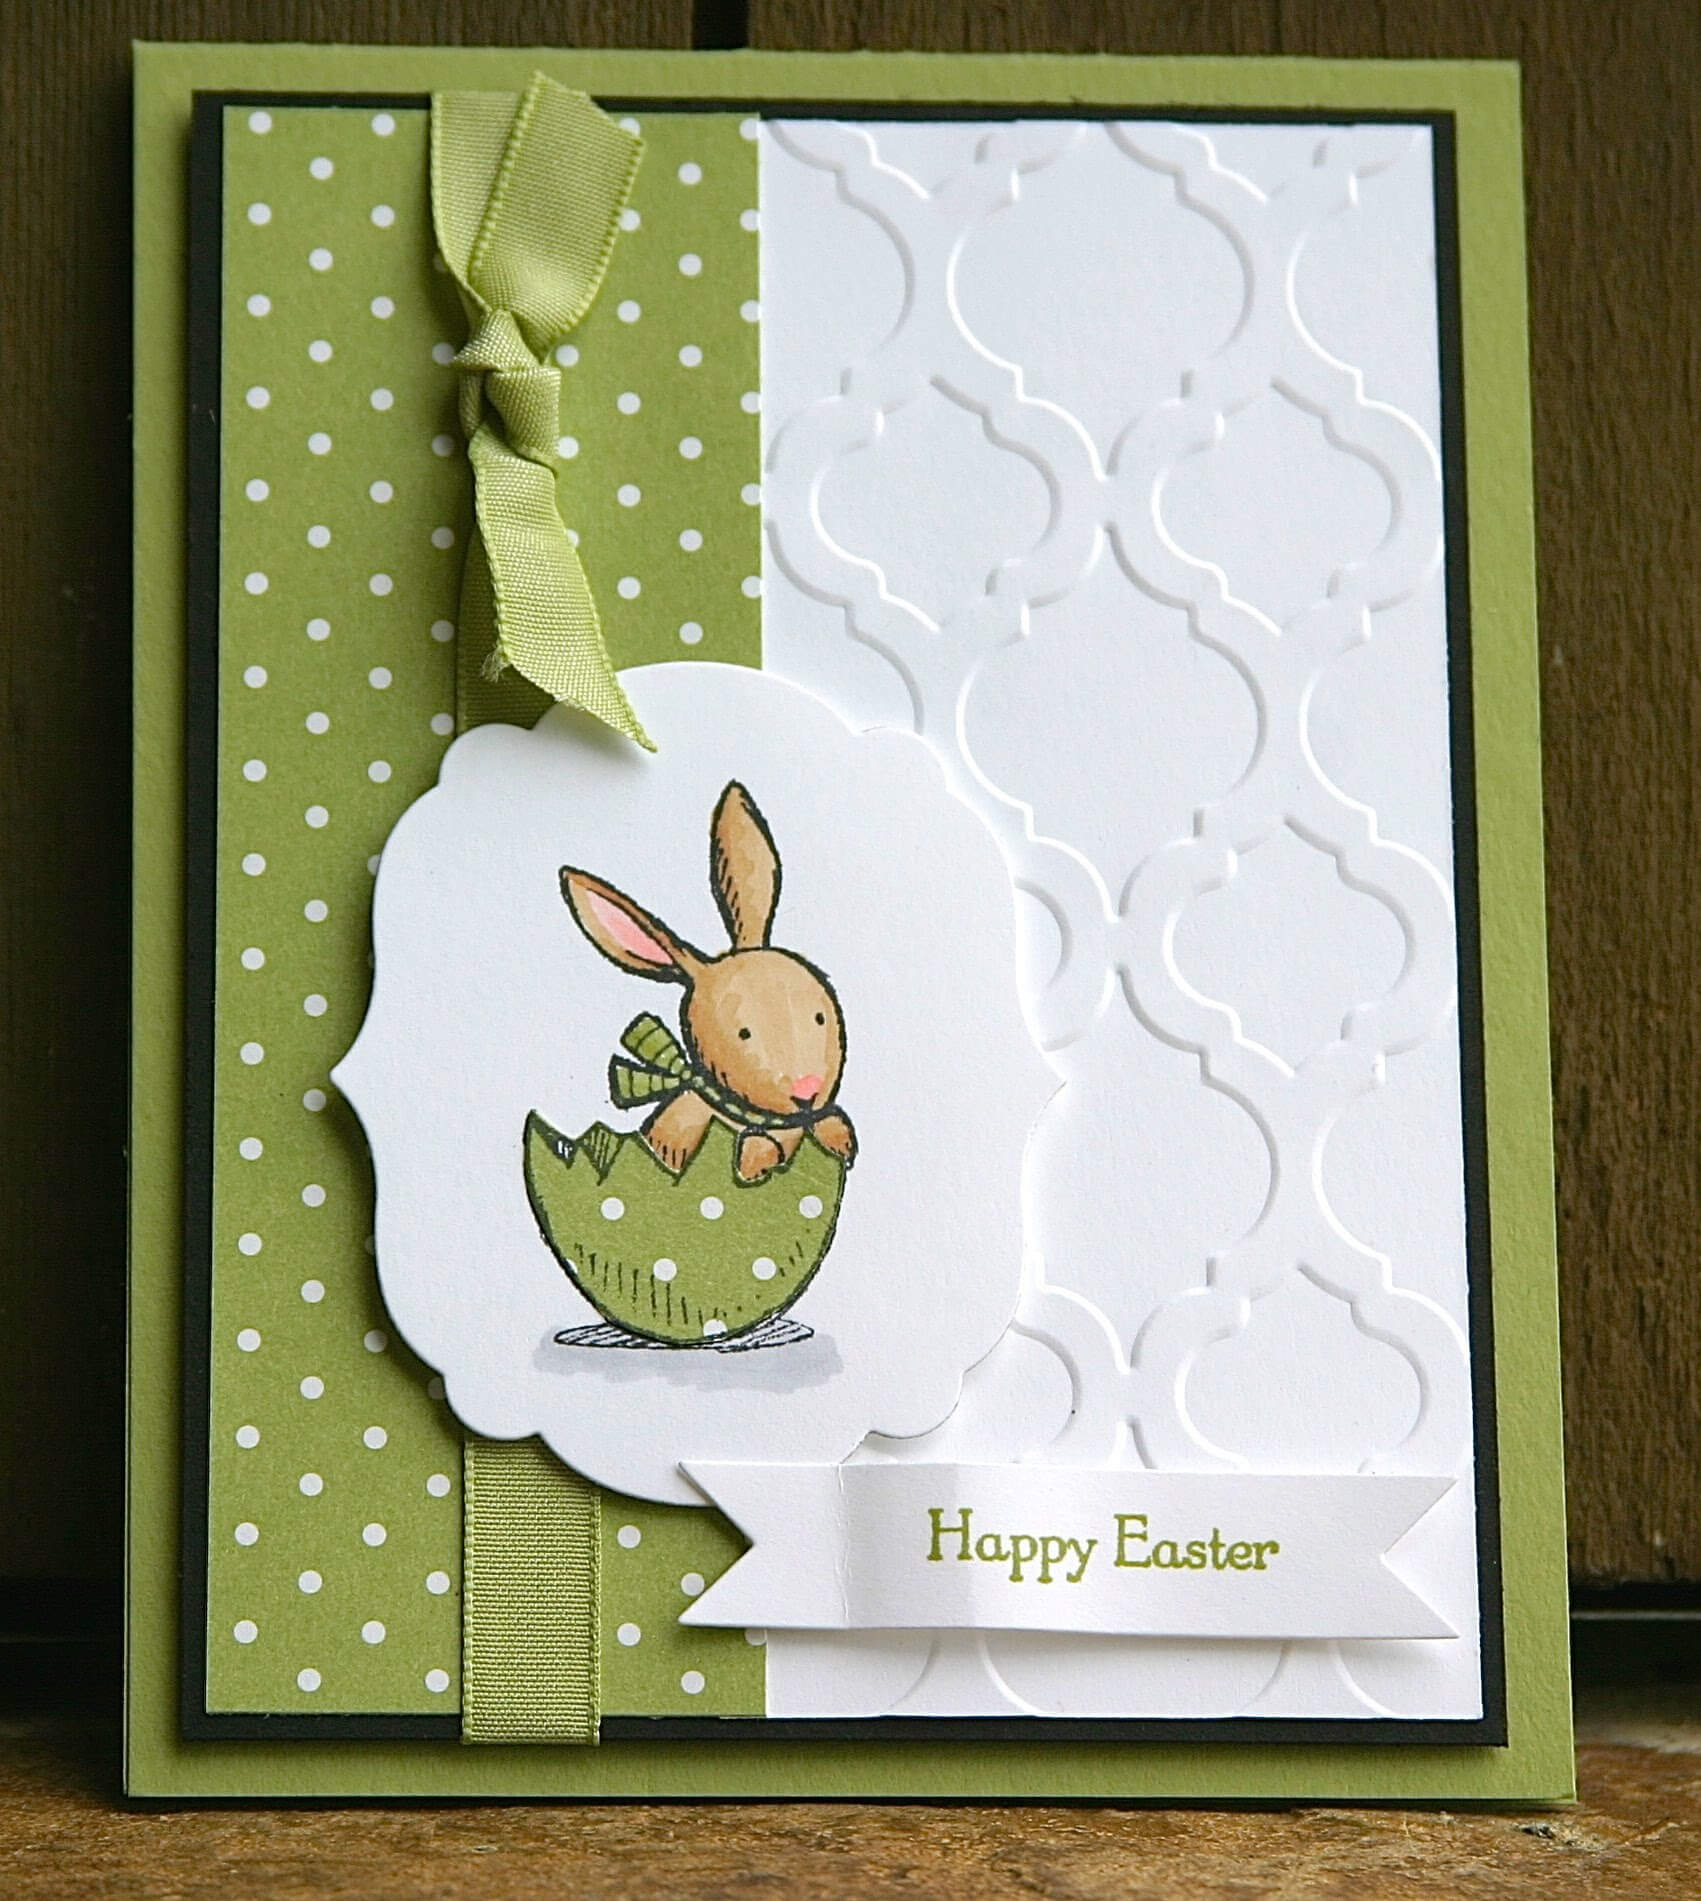 Easter Card Template Ks2 Easter Card Ideas 95 With Easter For Easter Card Template Ks2